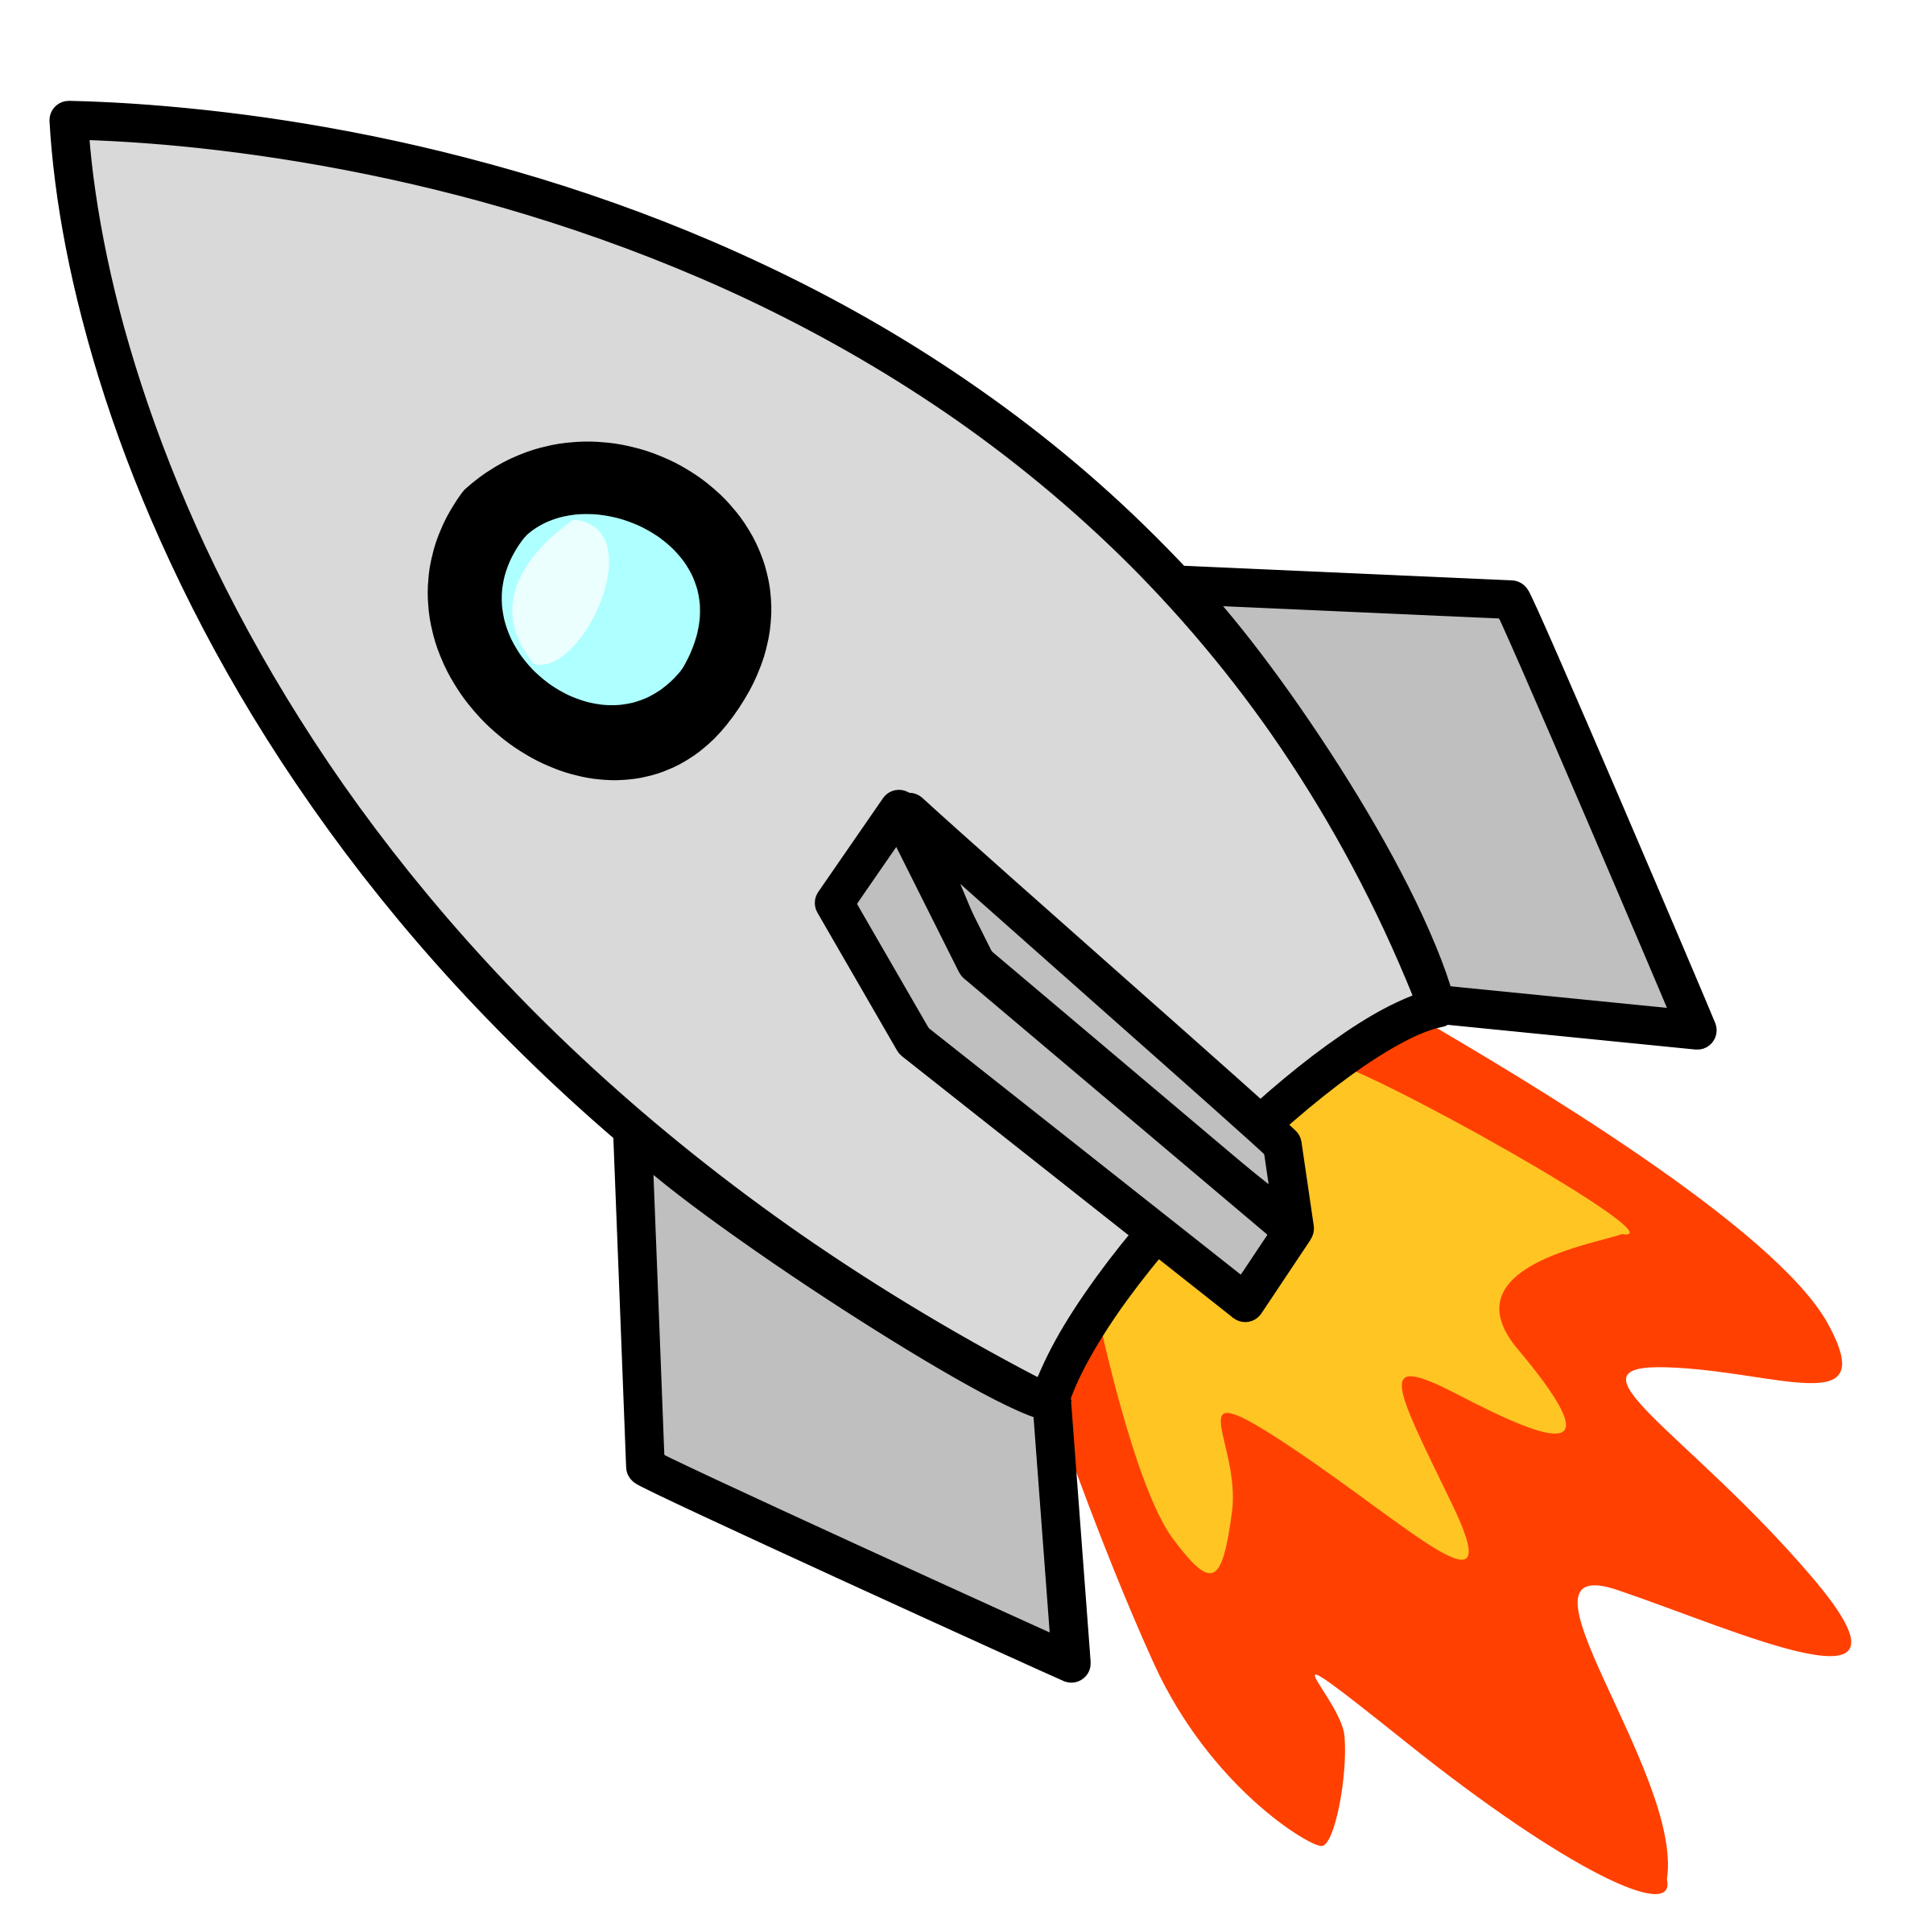 Galaxy clipart space rocket #15